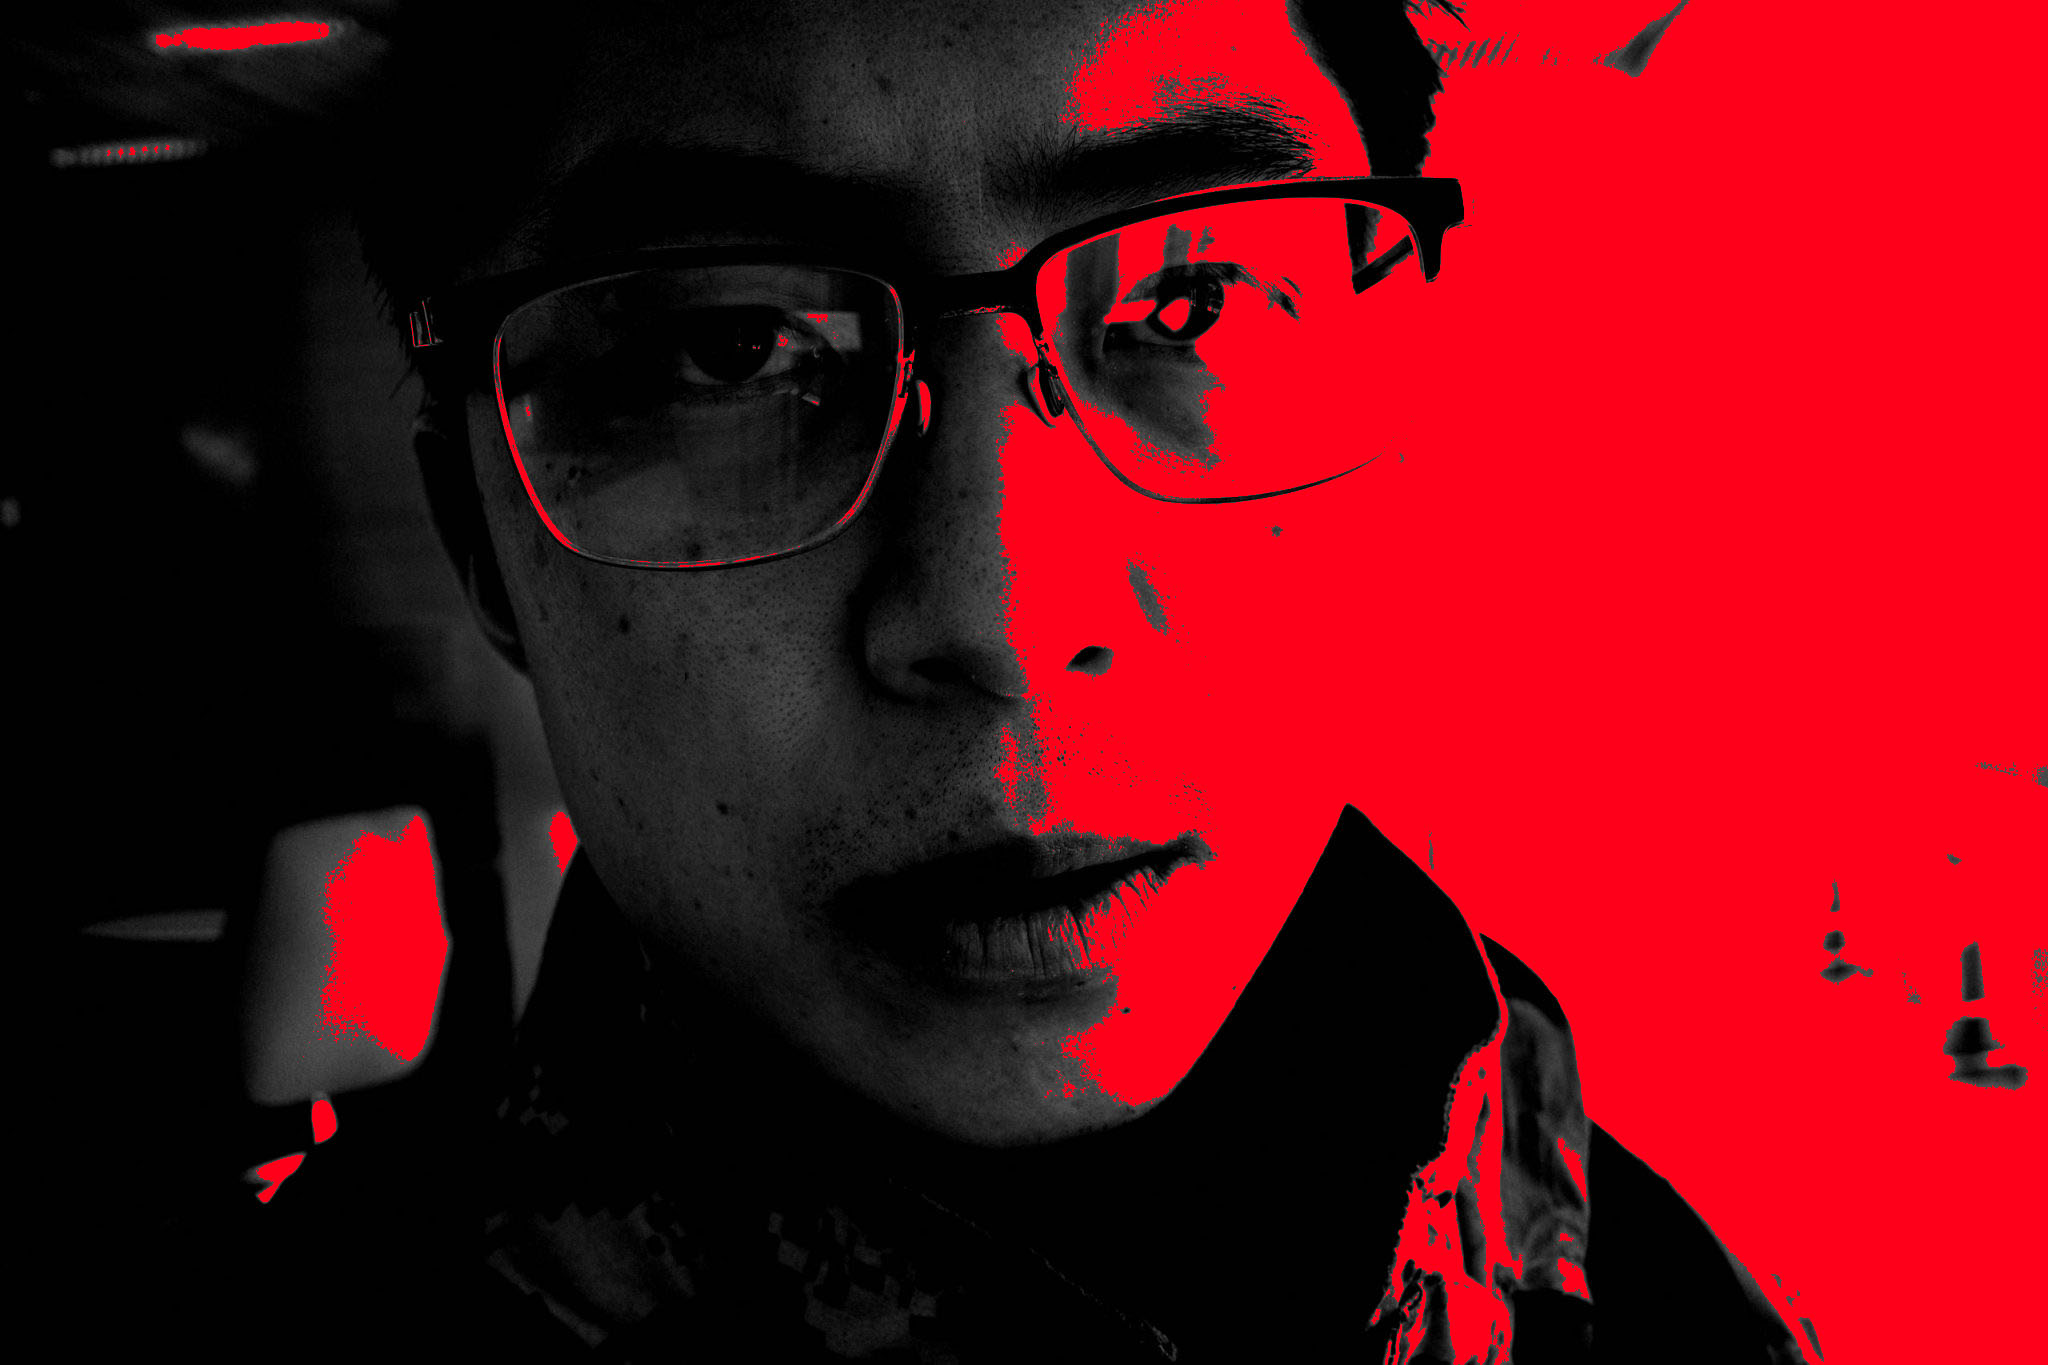 Eric kim selfie red black